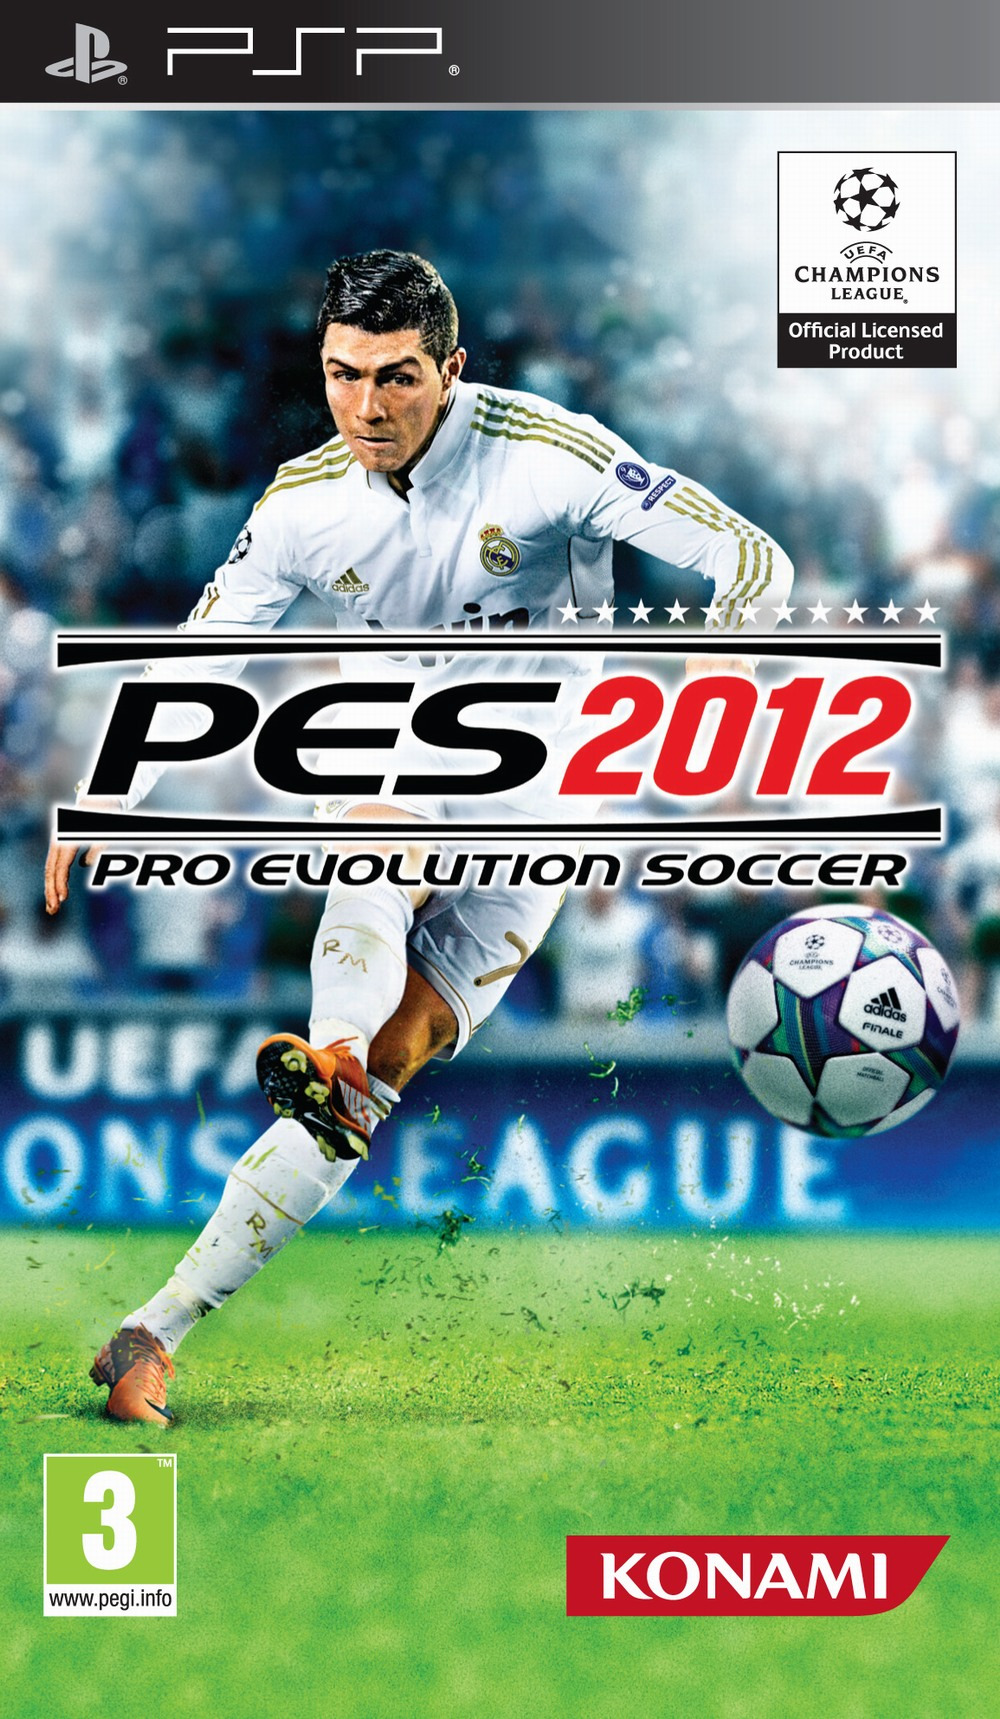 Pro Evolution Soccer 2012 EUR MULTi4 PSP | Megaupload MultiLien Jaquette-pro-evolution-soccer-2012-playstation-portable-psp-cover-avant-g-1315229368